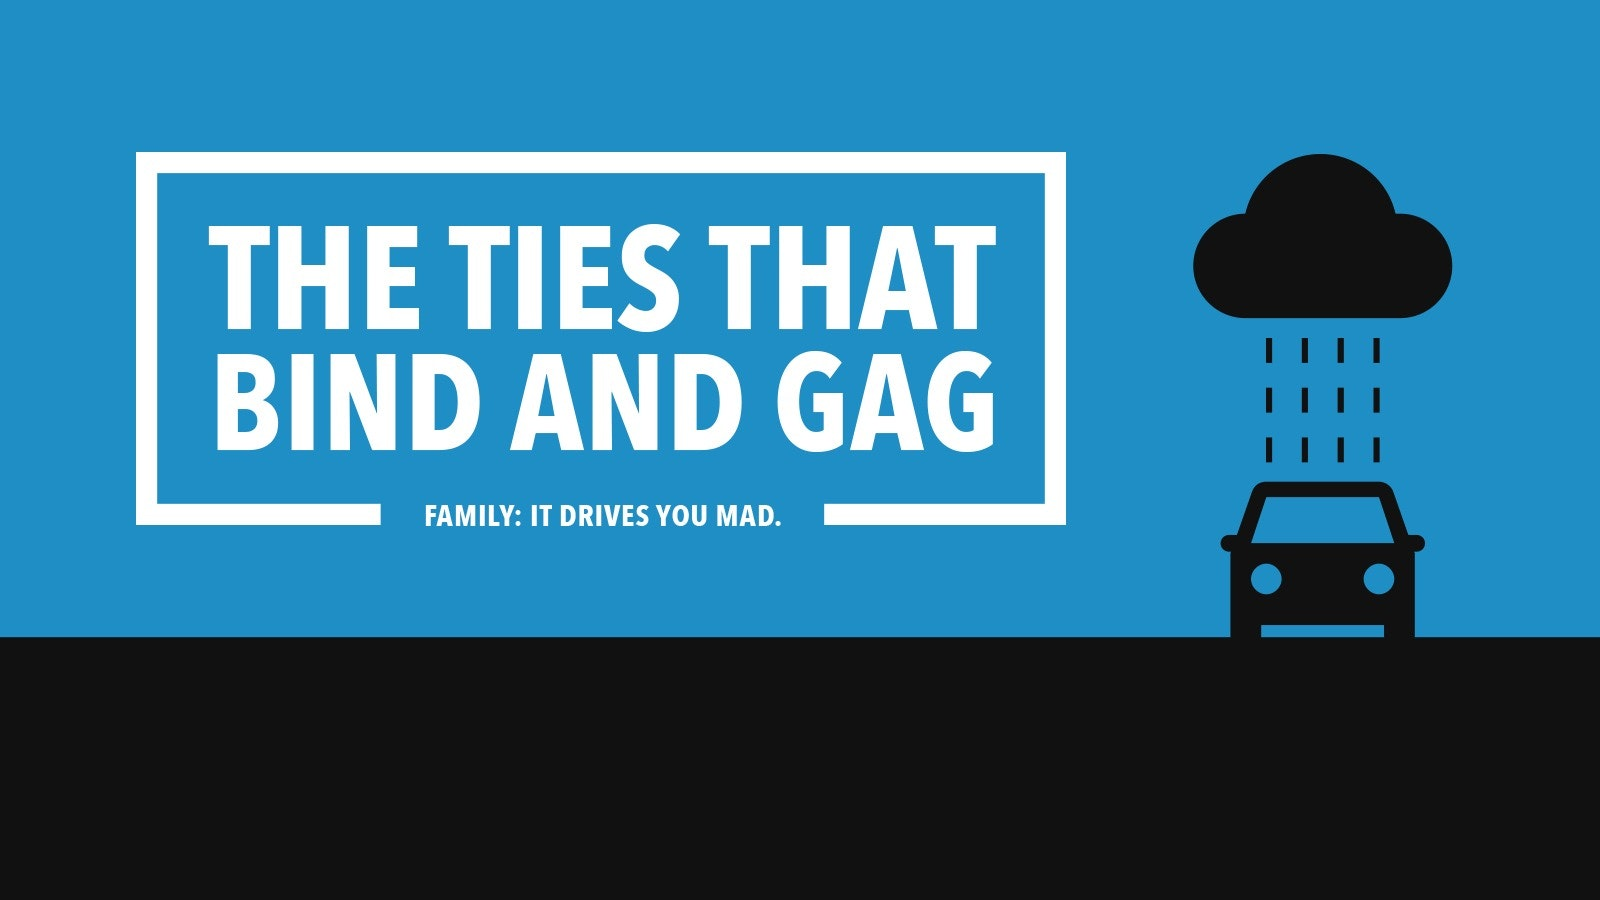 The Ties that Bind and Gag